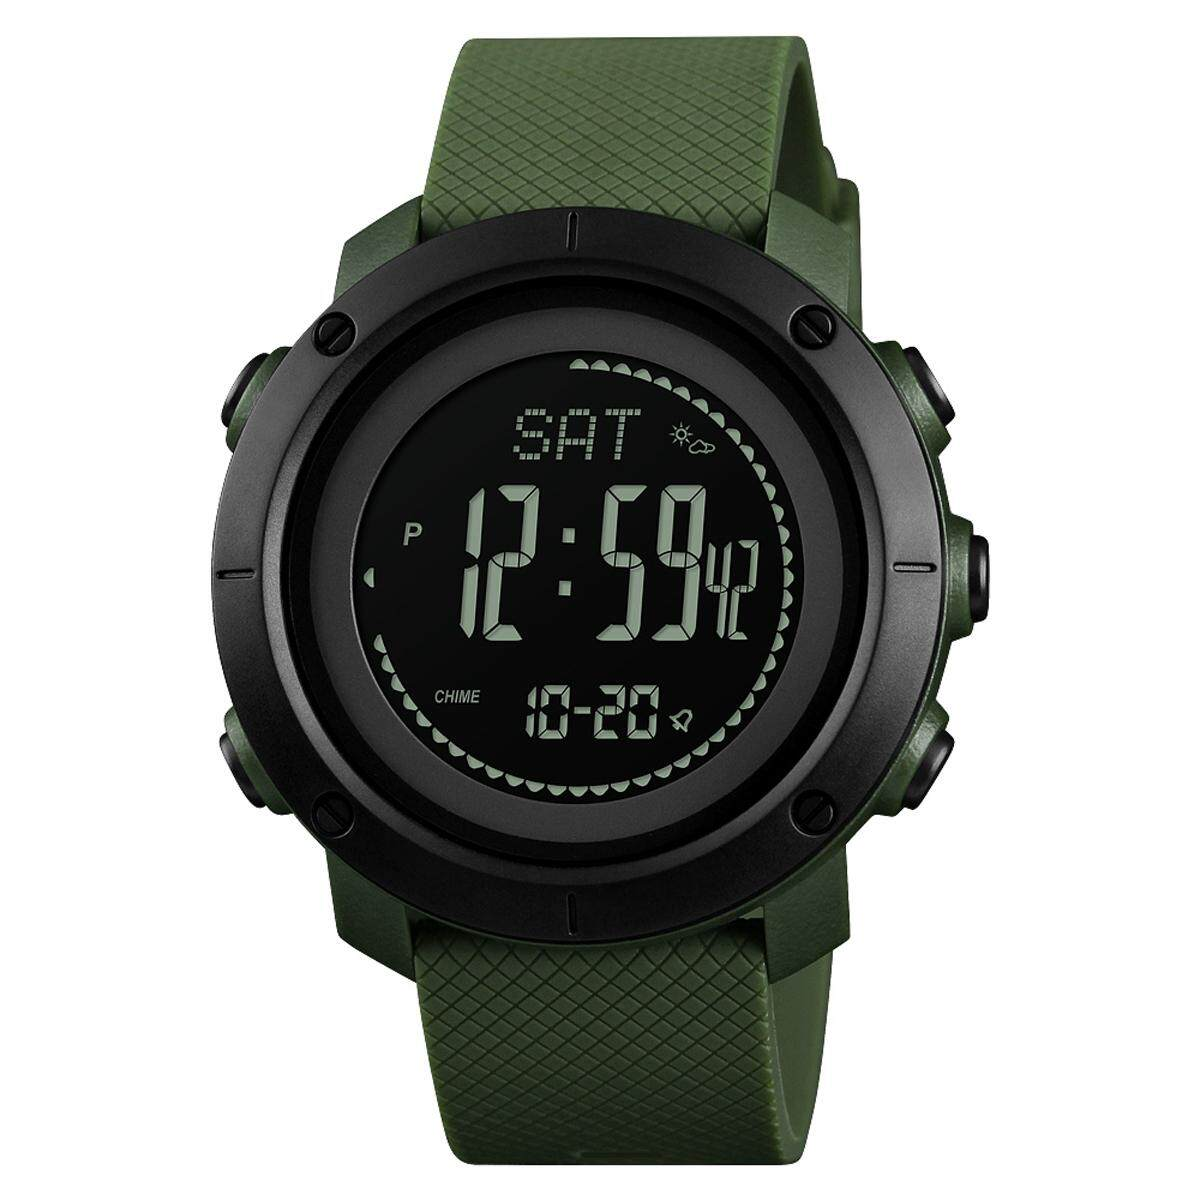 Lover's Watches New Gps Smart Relogio Sports Watch Men Smartwatch Woman Watches Waterproof Compass Pressure Altitude Heart Rate Monitoring